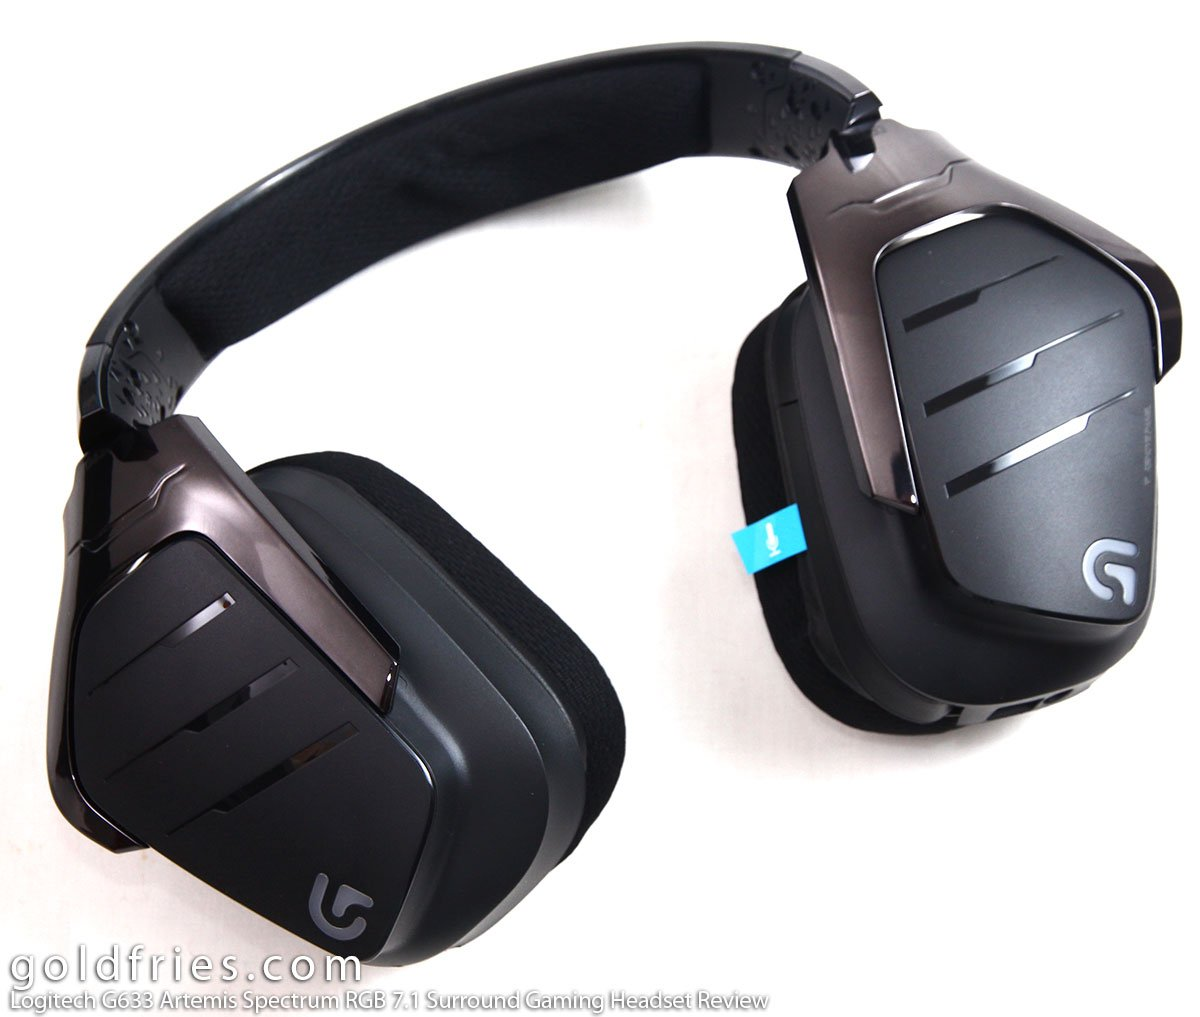 Logitech G633 Artemis Spectrum RGB 7.1 Surround Gaming Headset Review 5